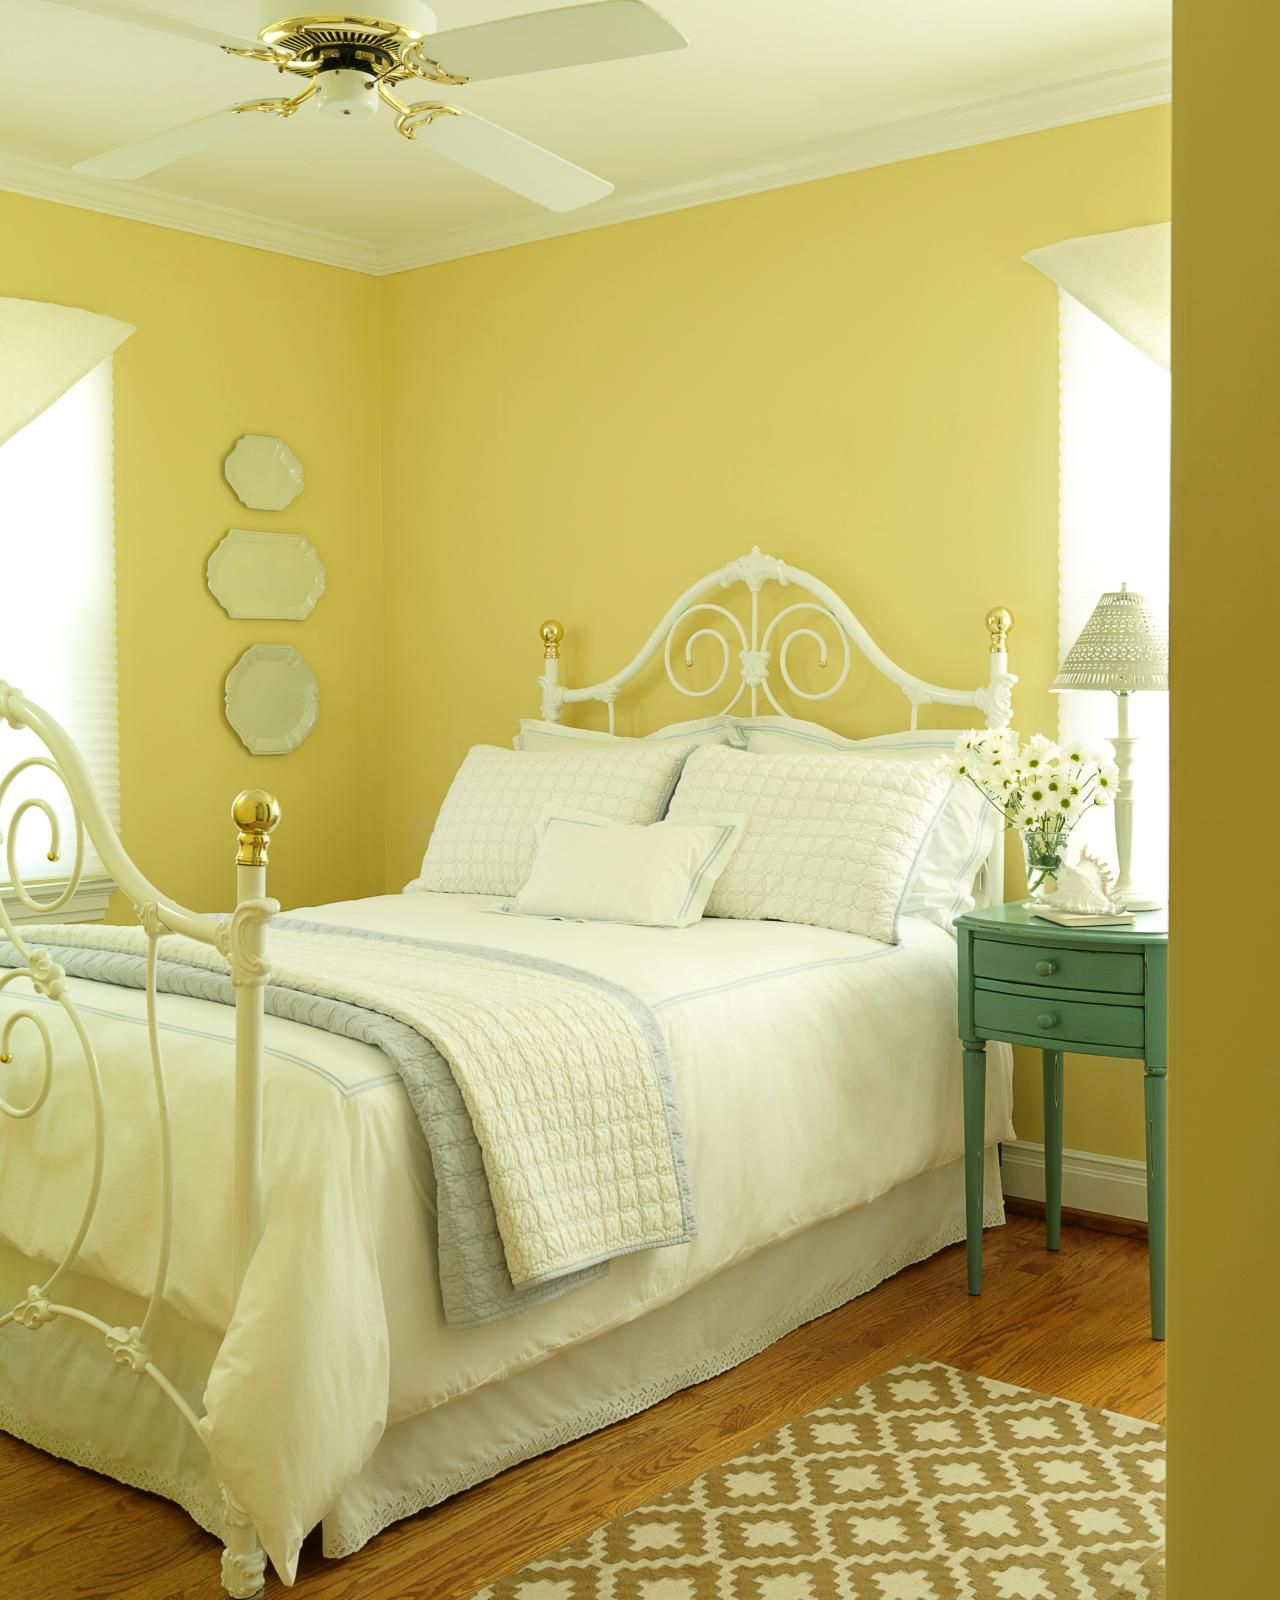 30 Beautiful Yellow Bedroom Design Ideas | Bedroom Design ...